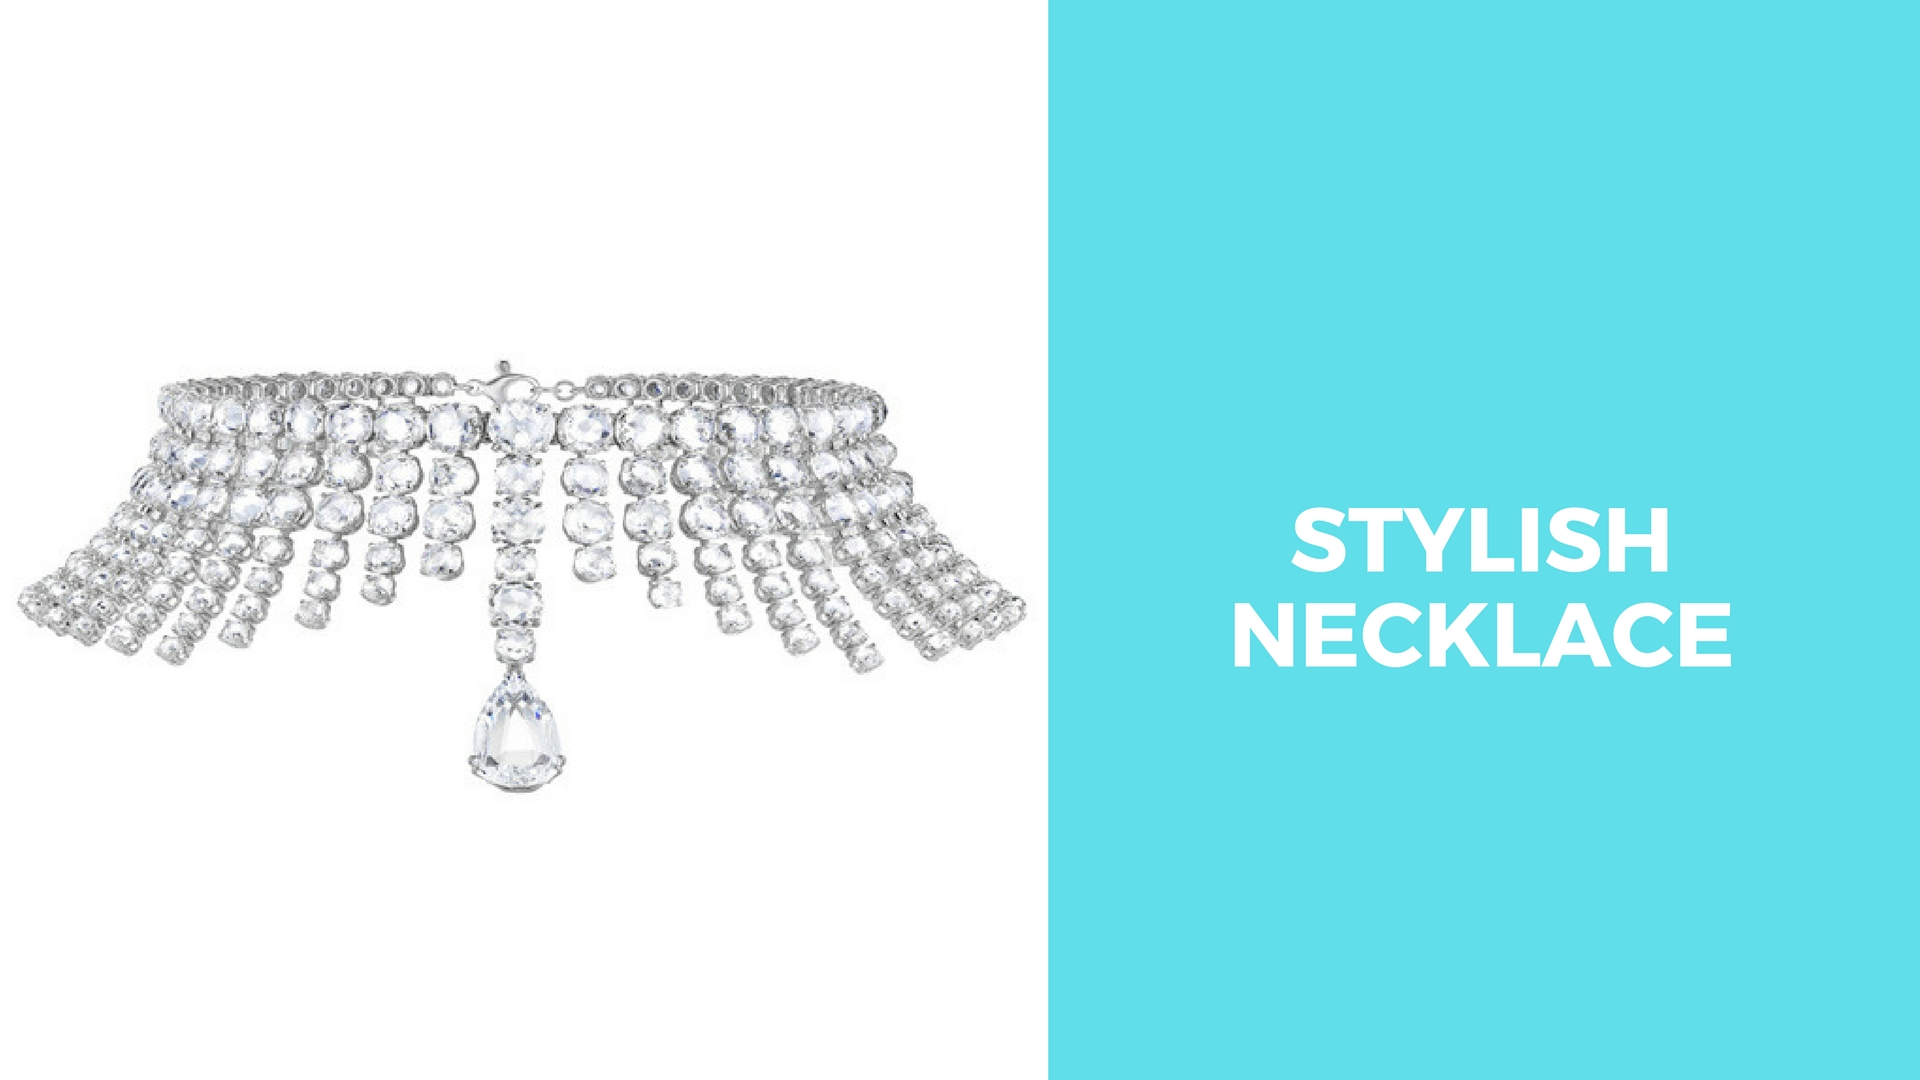 Stylish Necklace - Must Have Jewelry for women